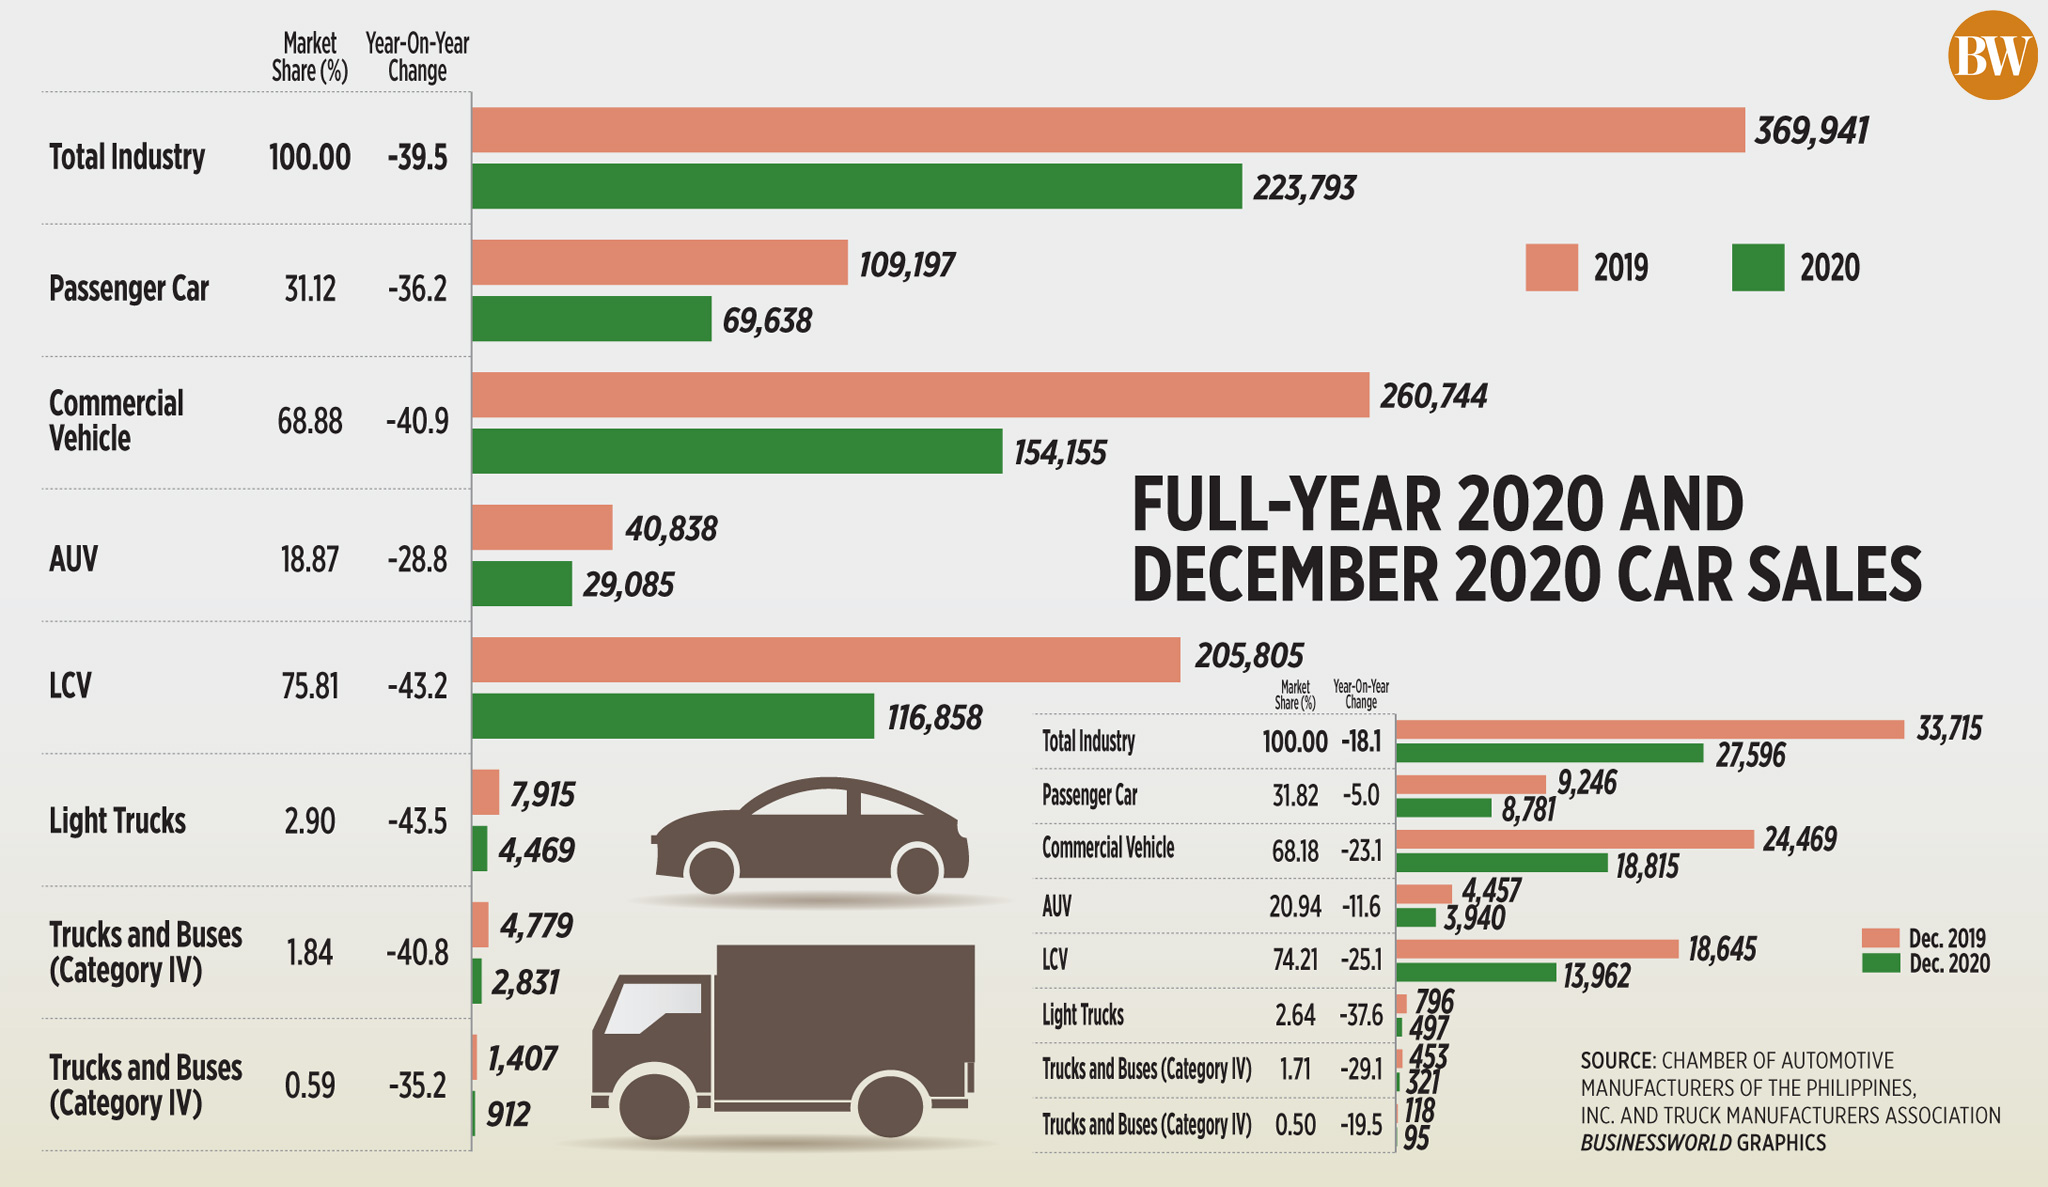 Full-year 2020 and December 2020 car sales